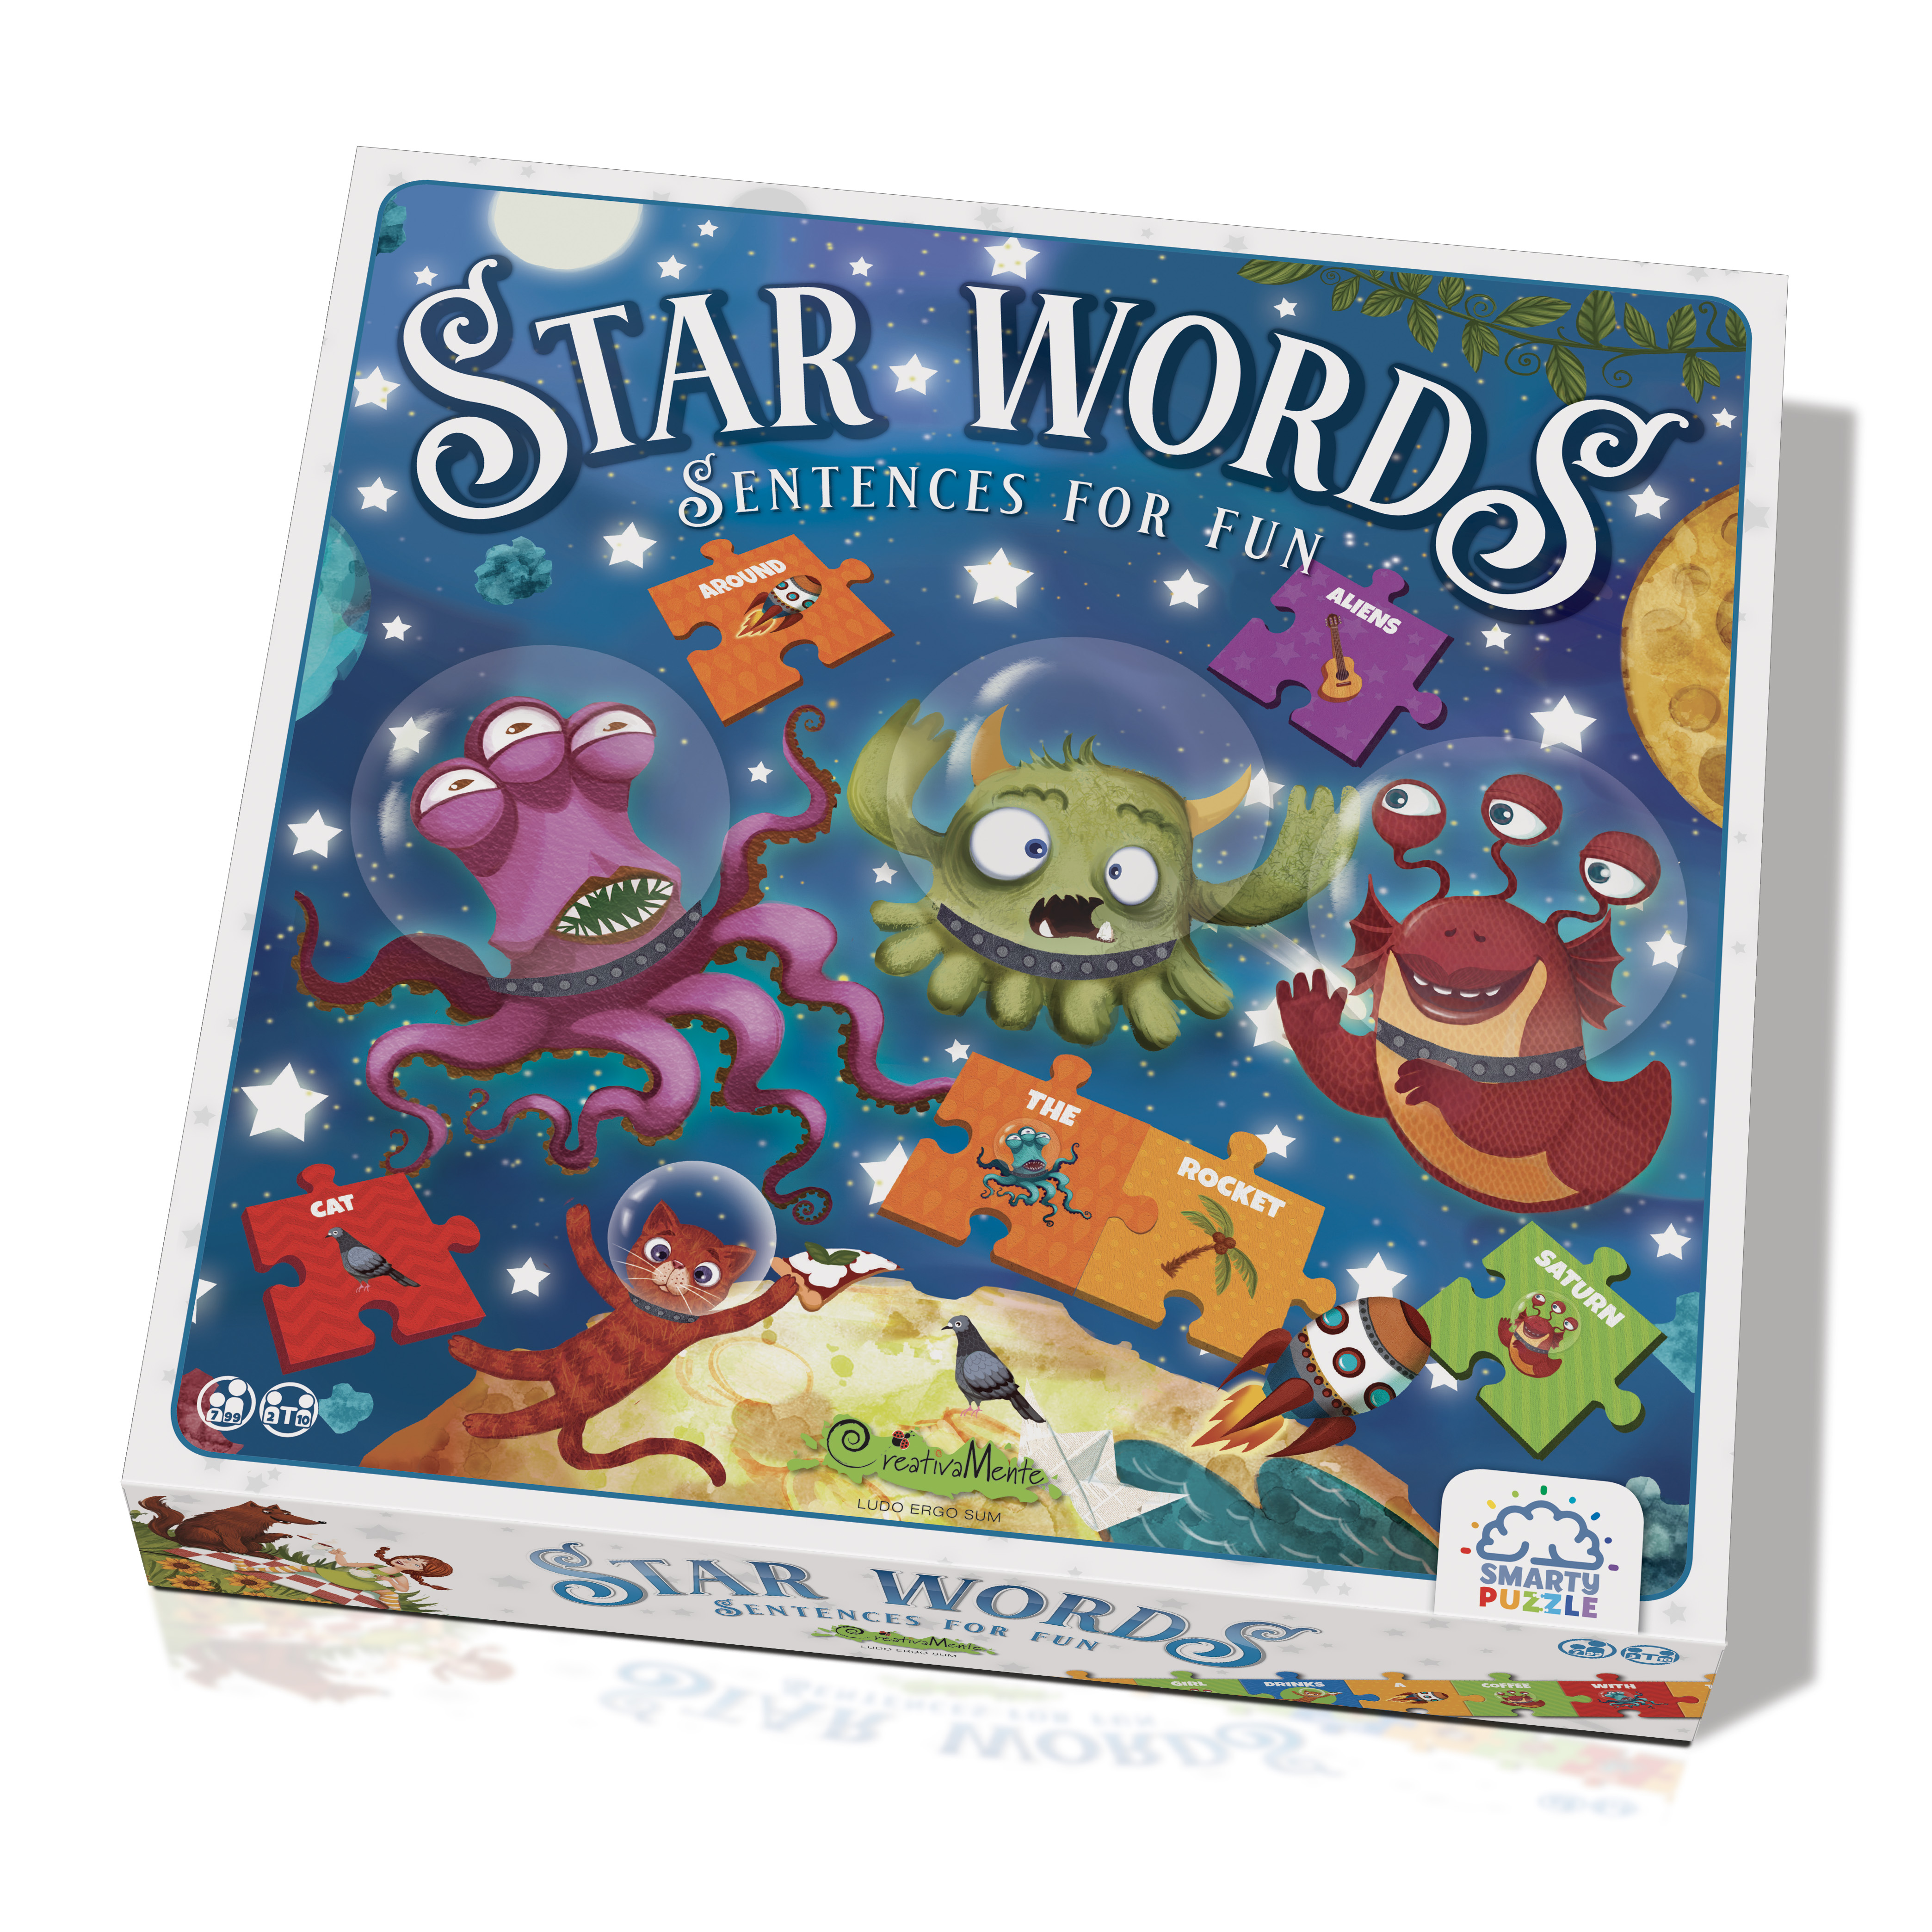 Star Words – Sentences for fun